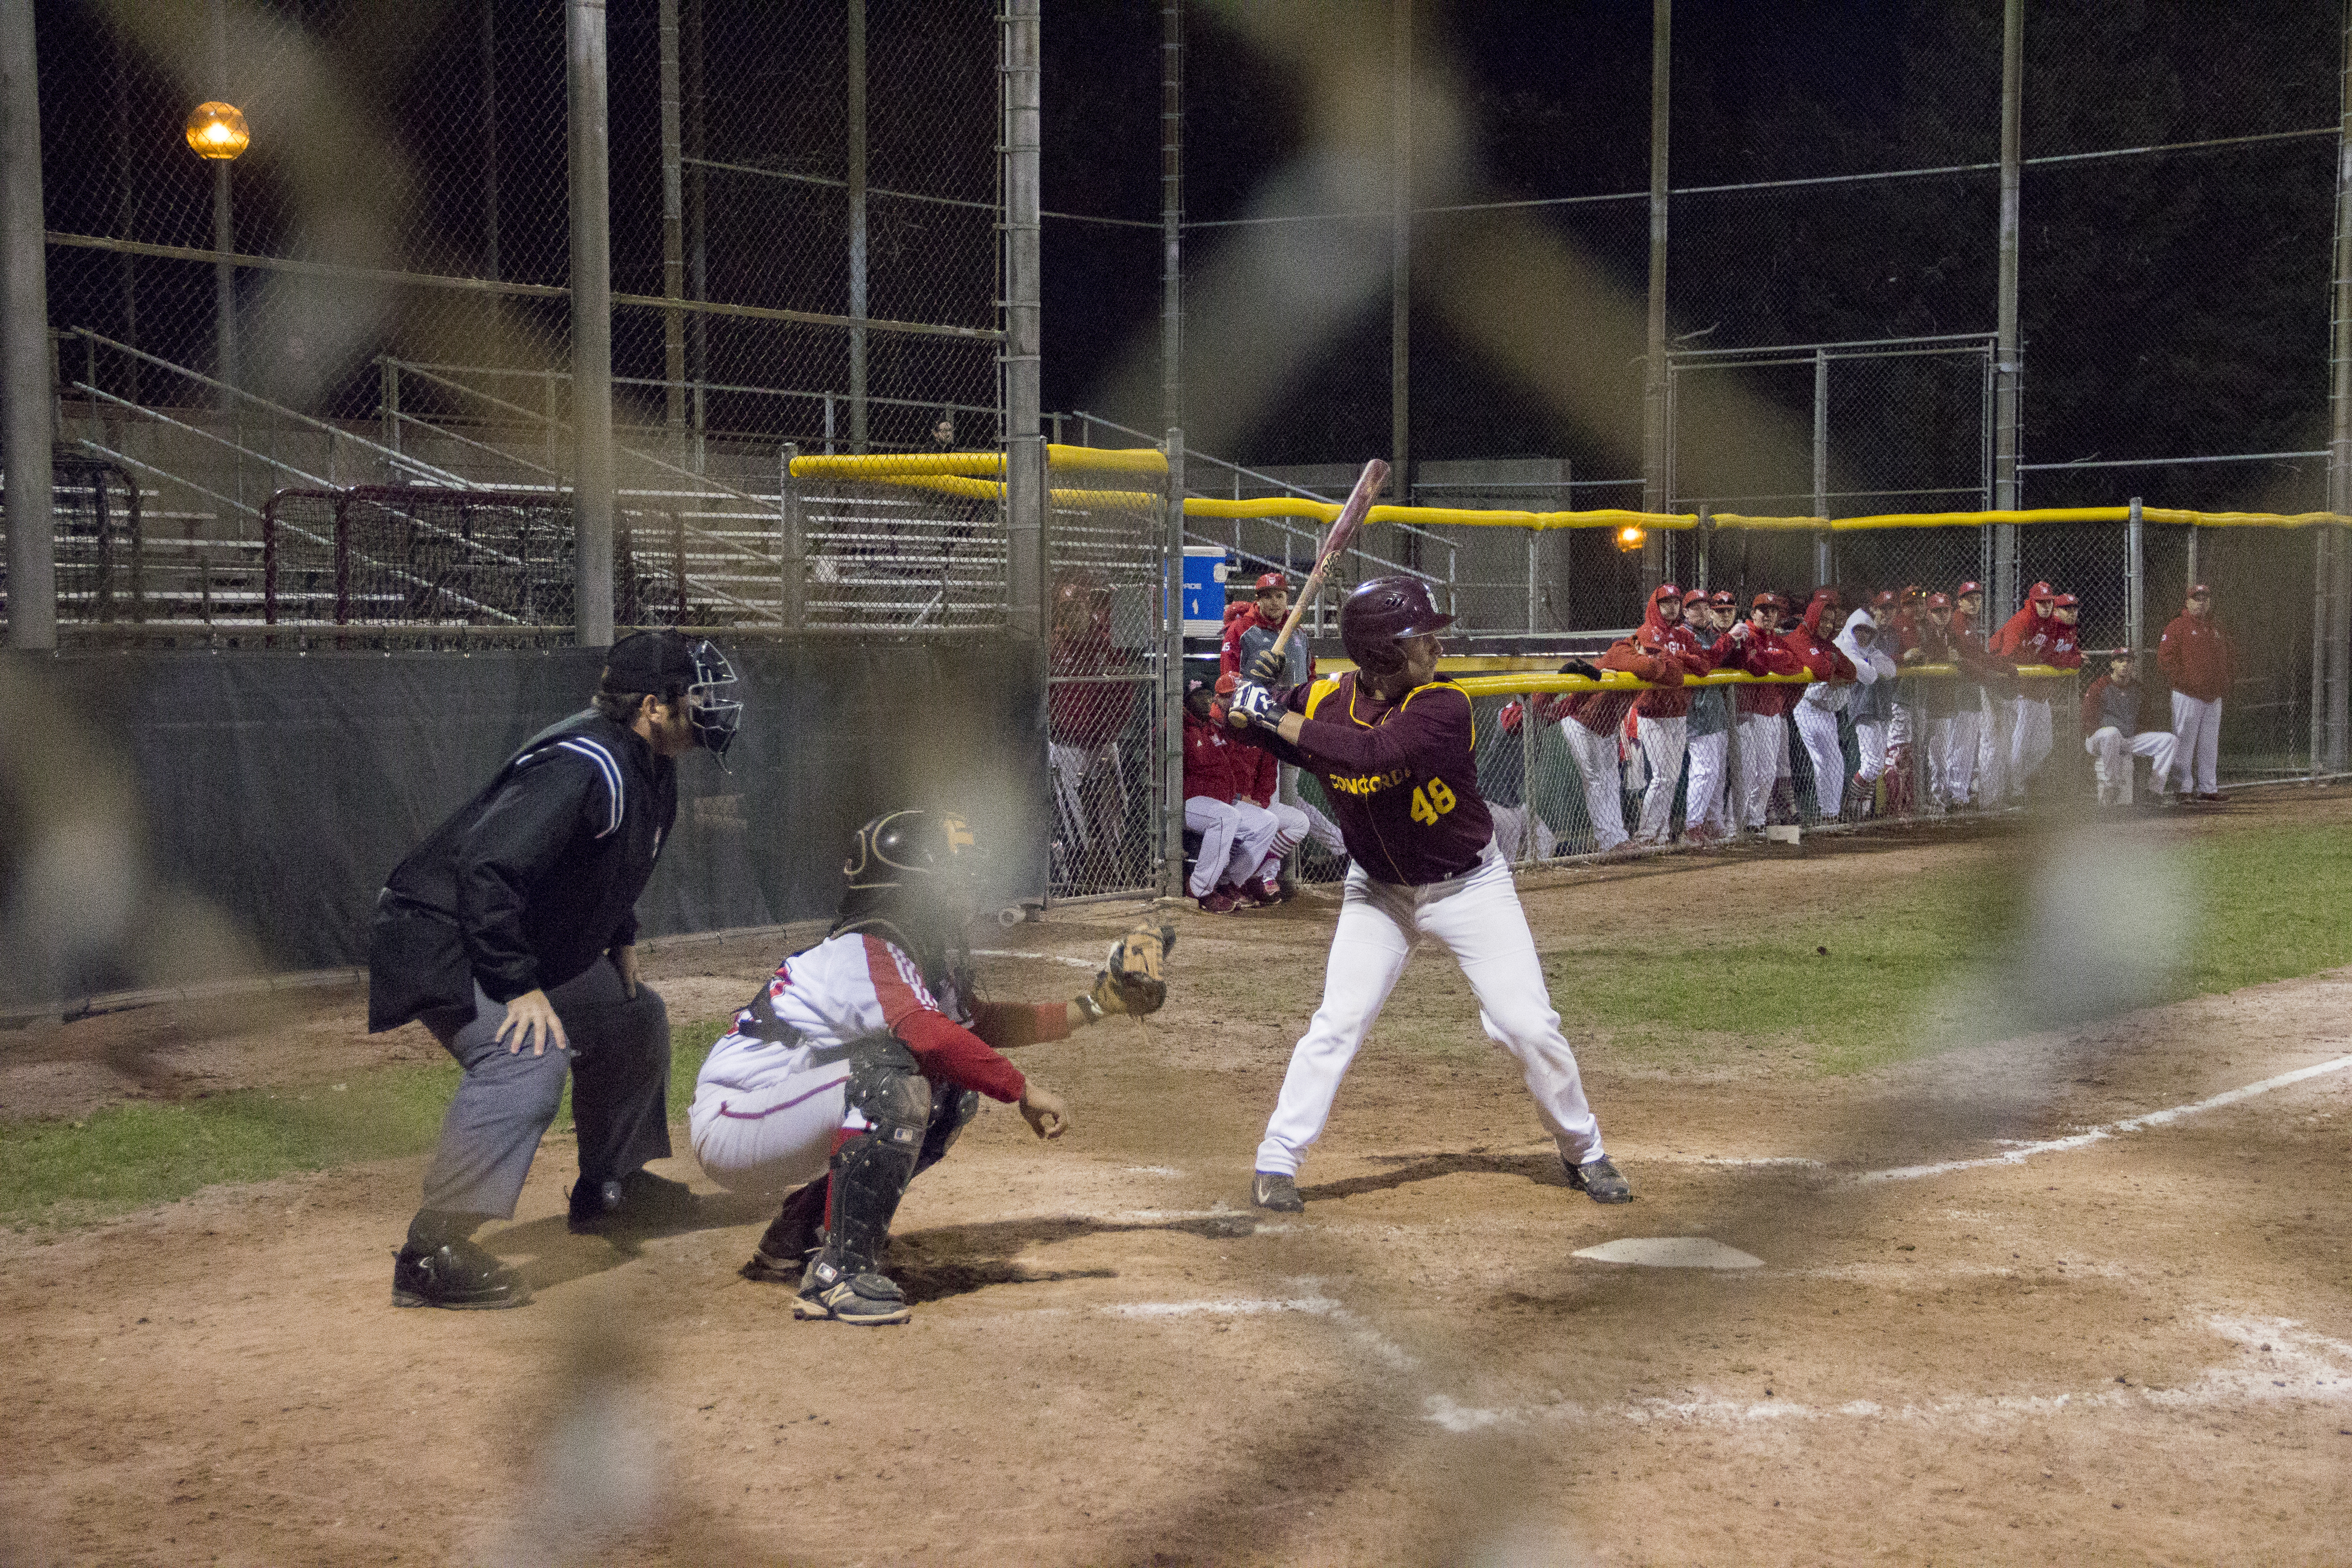 Concordia's Dario Vincelli up at the plate in Thursday's home loss. Photo by Michael Maclean.